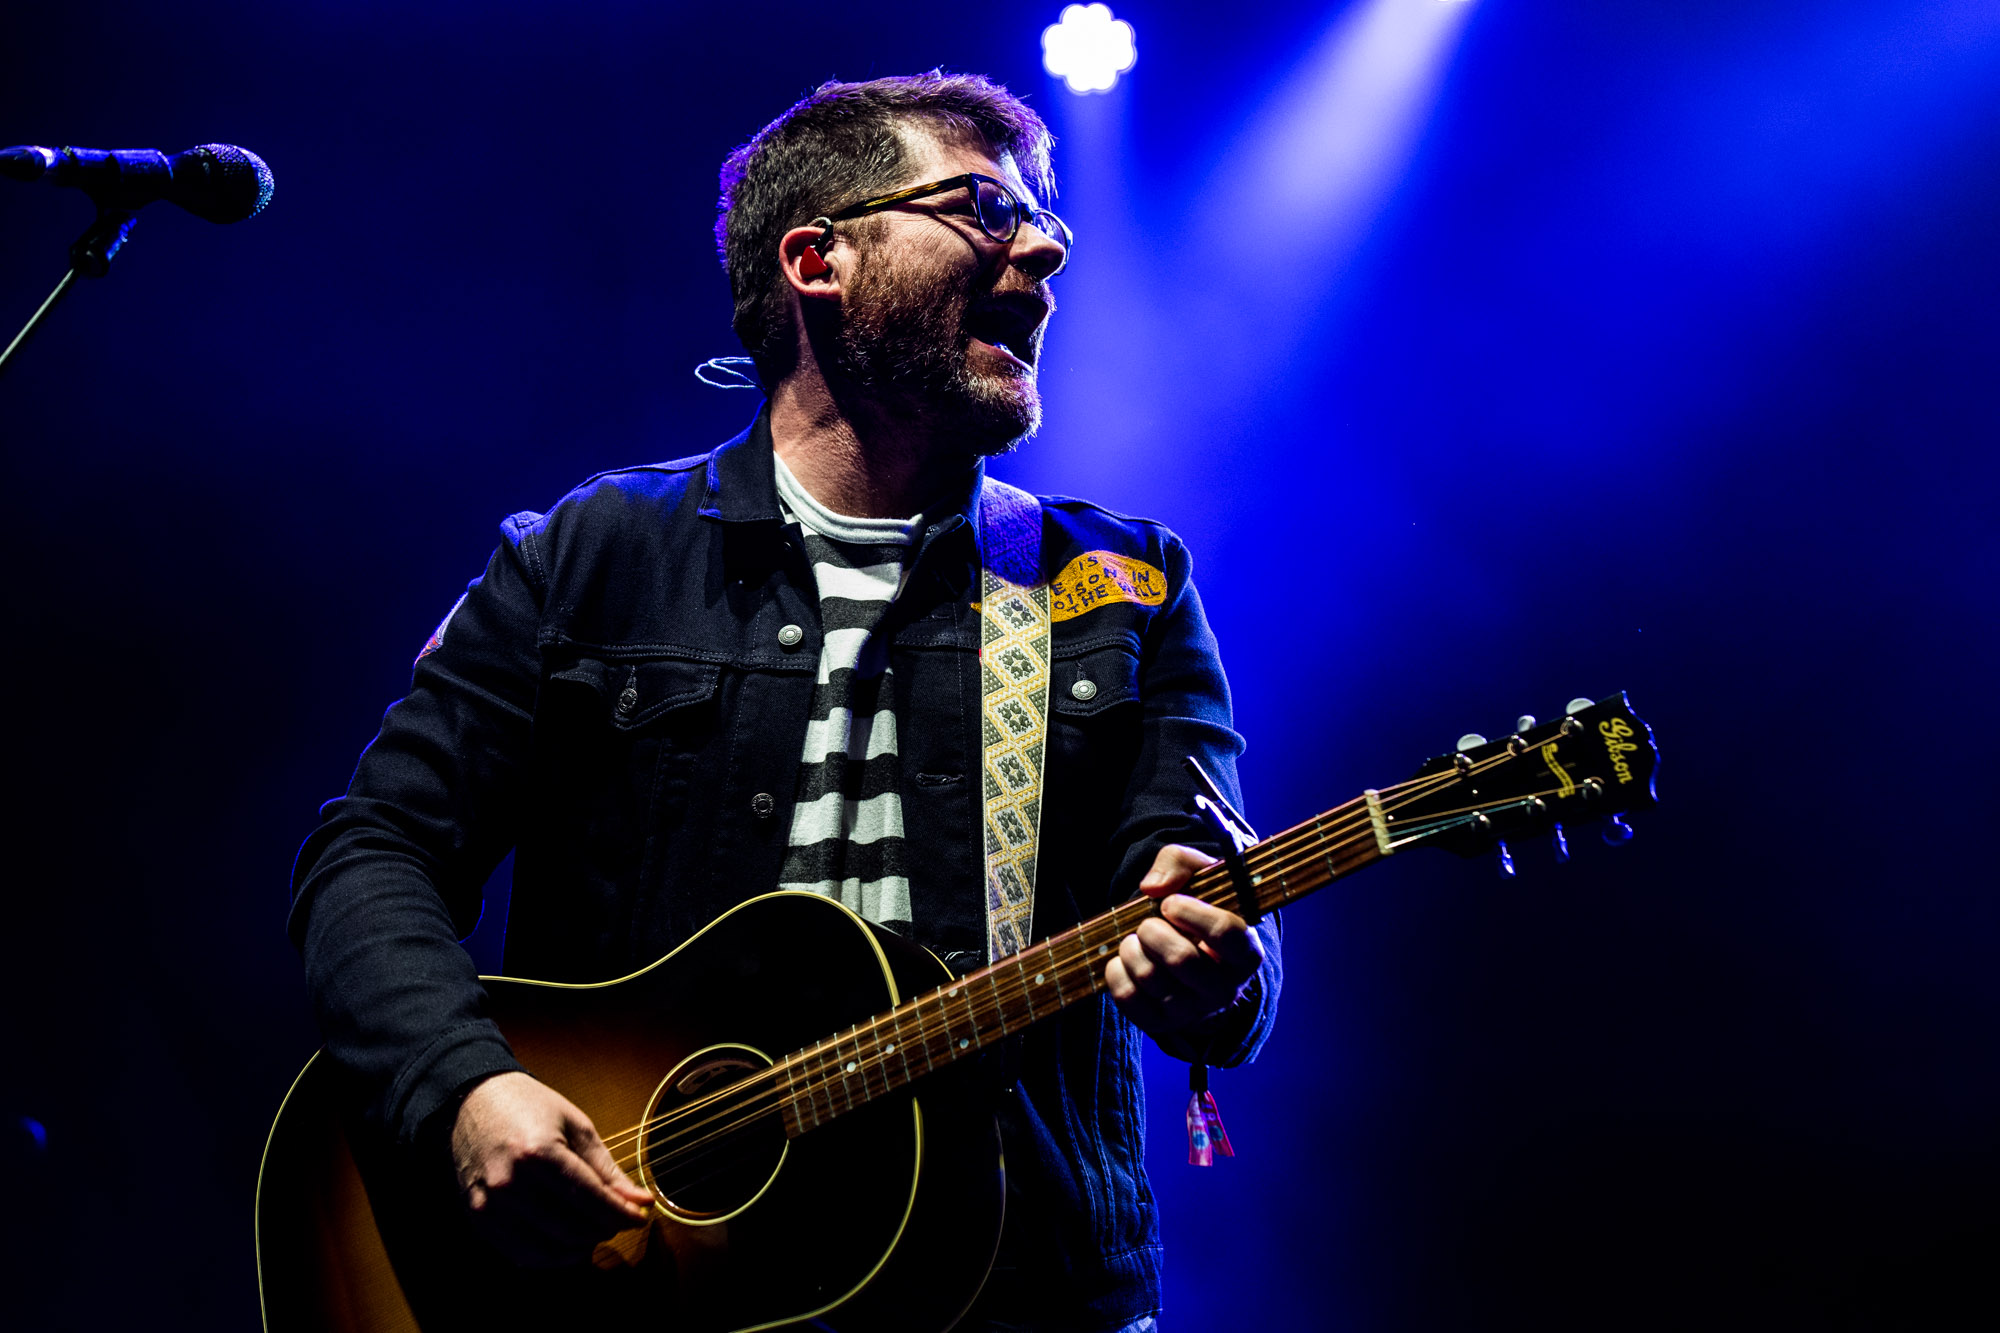 Colin Meloy - Live From the Farm (remote livestream)